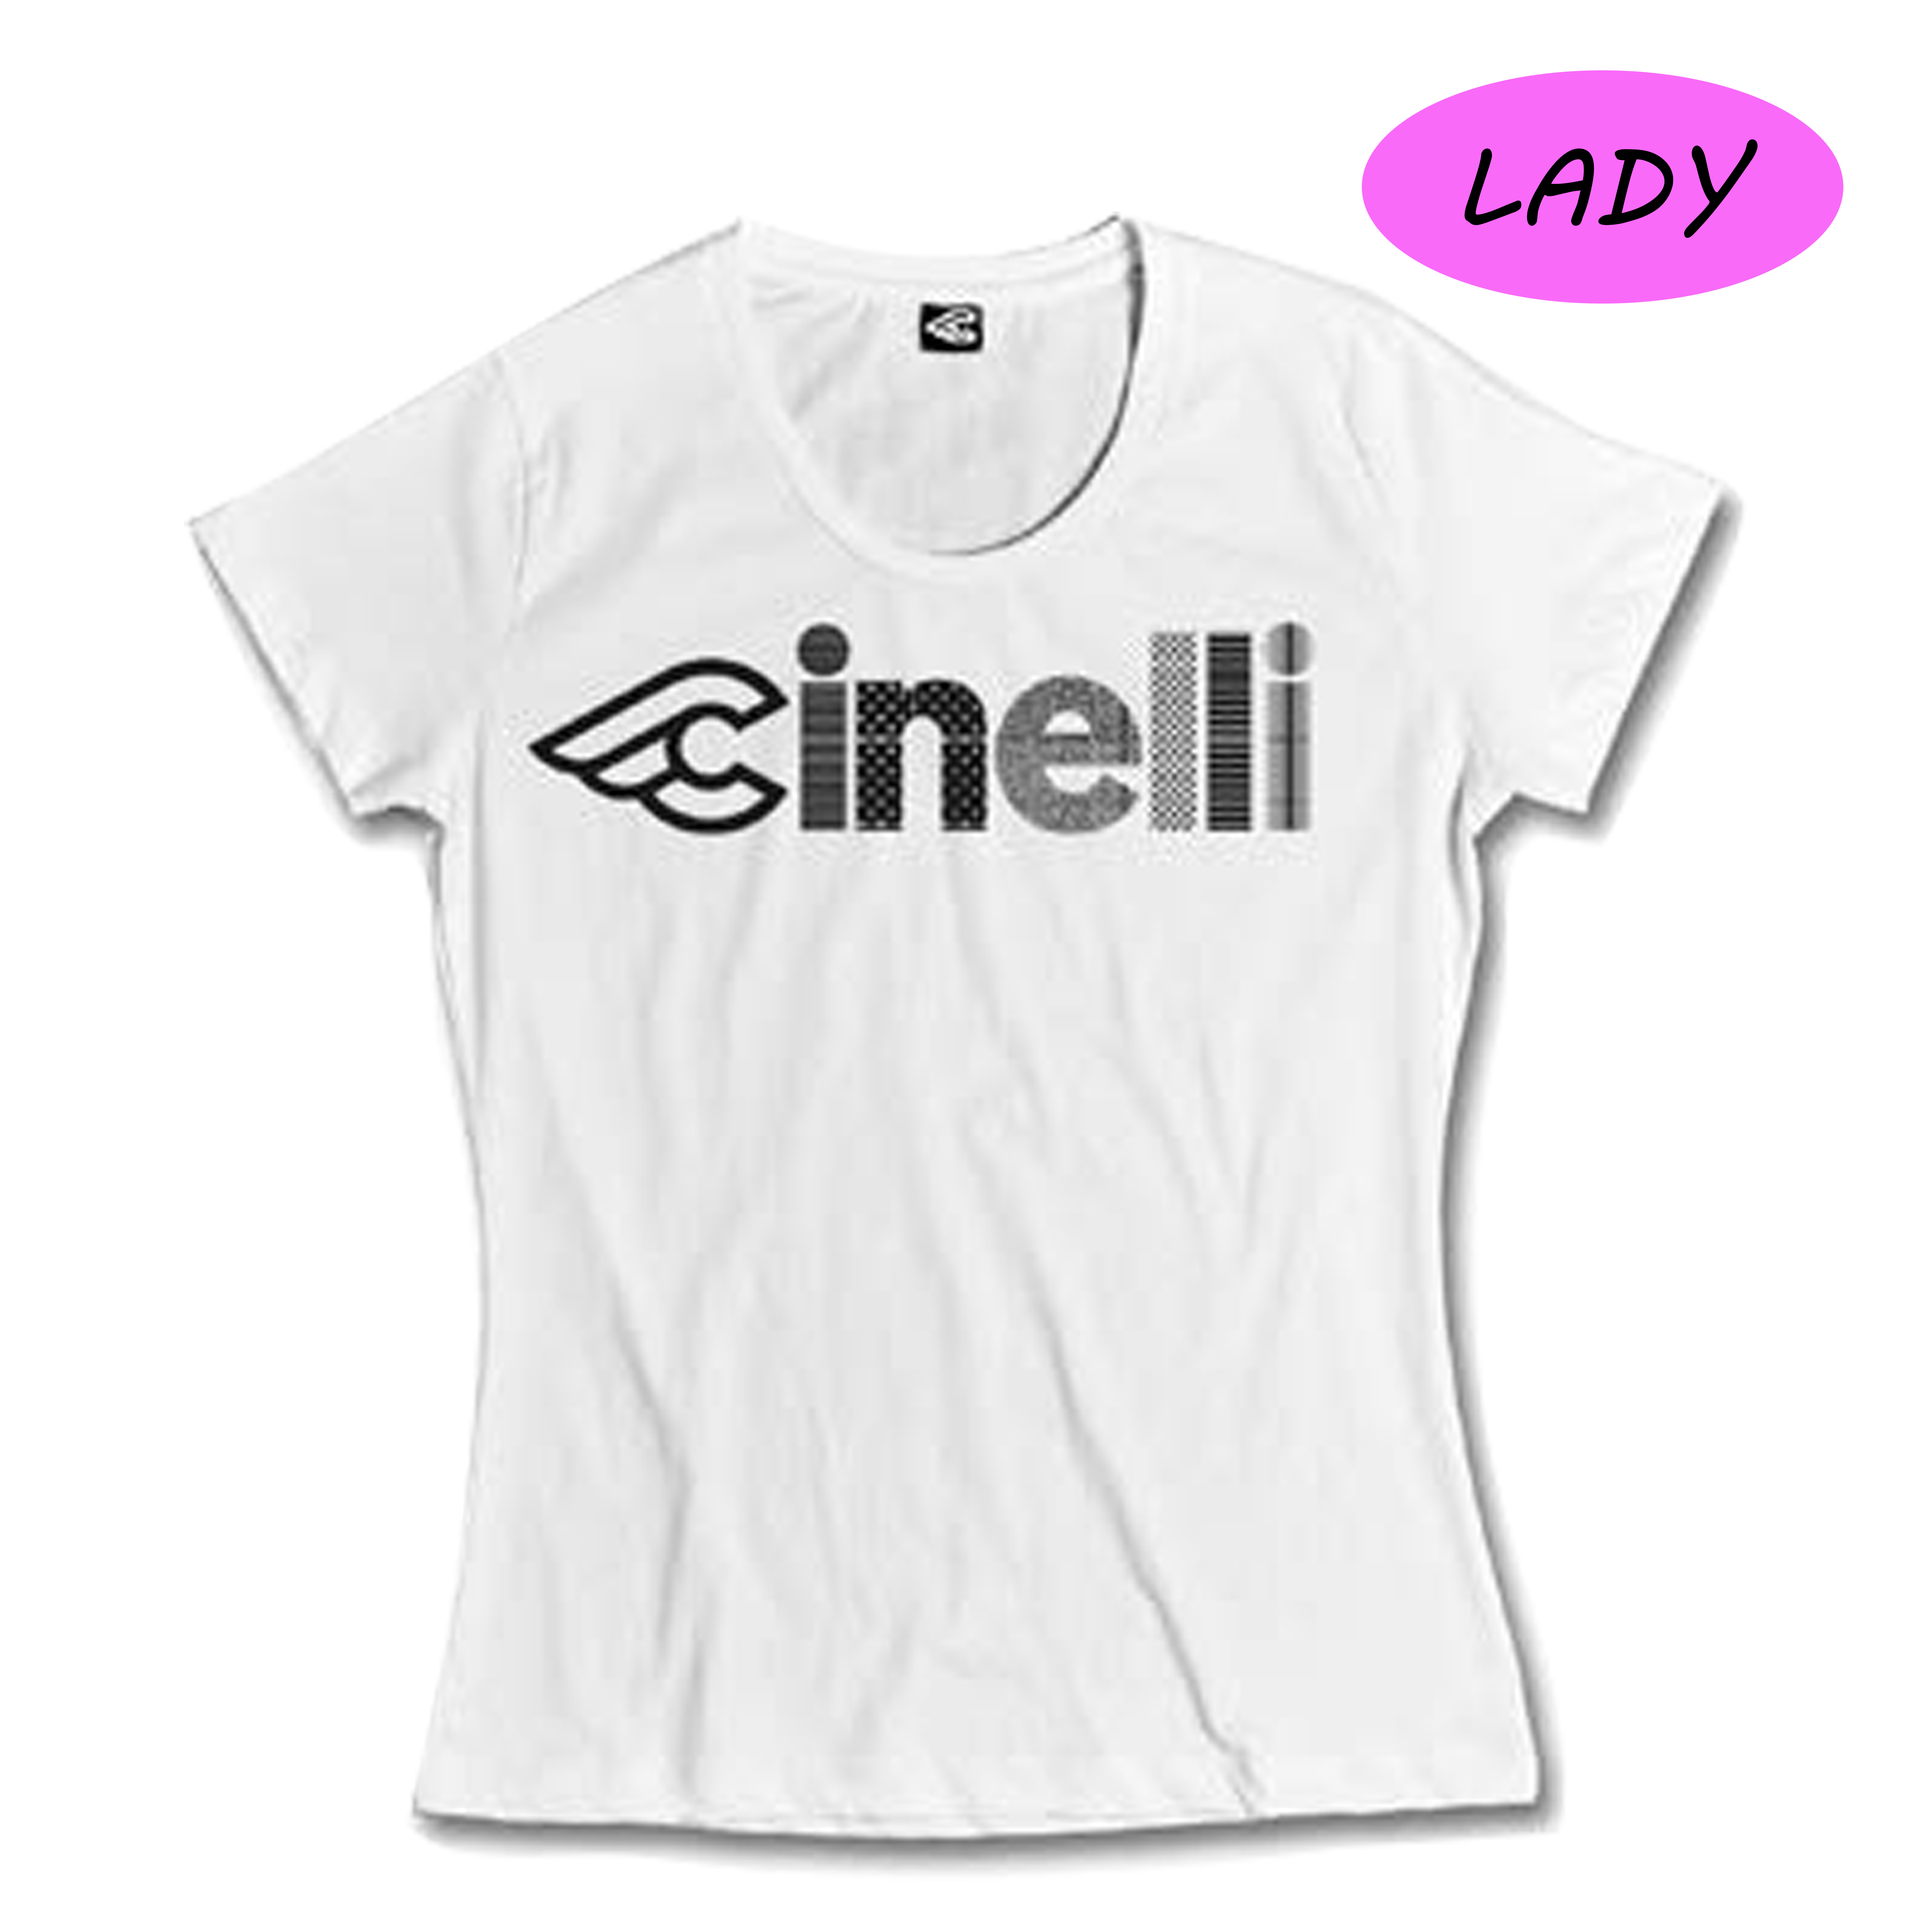 Cinelli Optical Lady T-Shirt